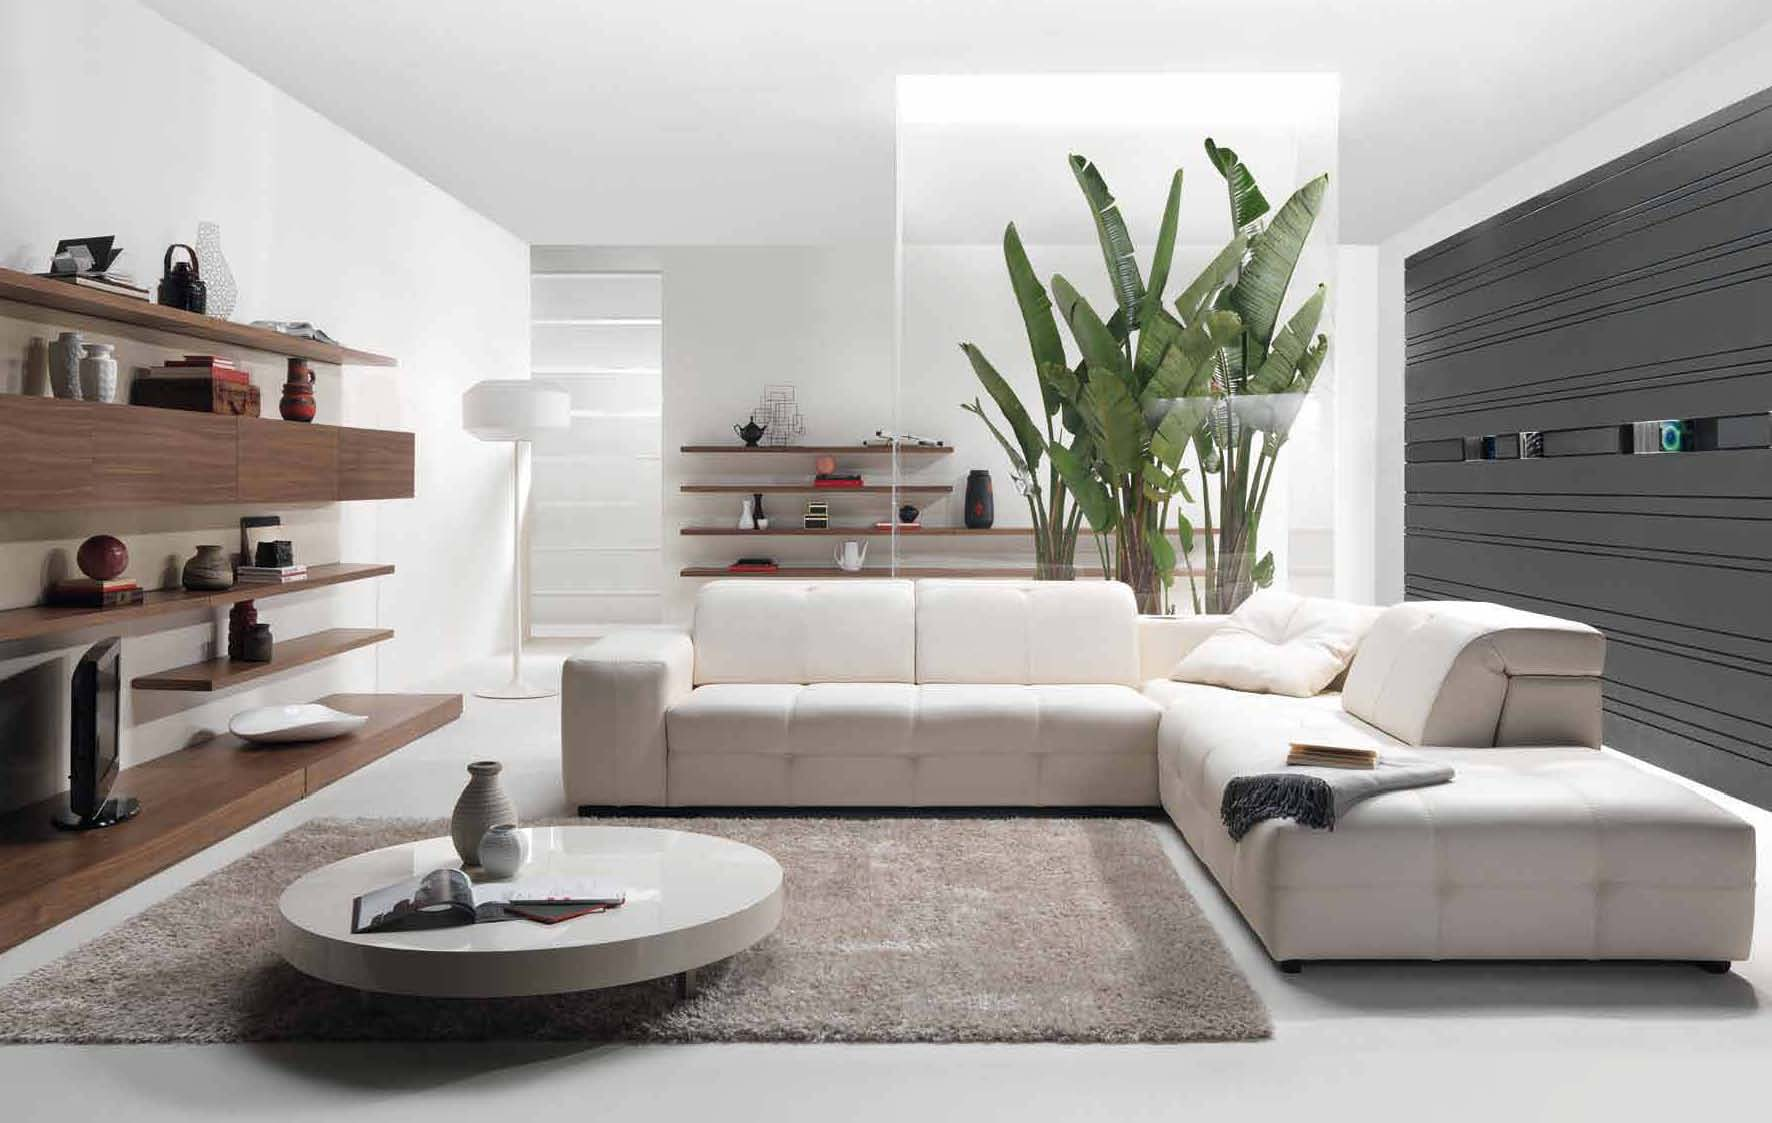 7 modern decorating style must haves decorilla for Home decor minimalist modern